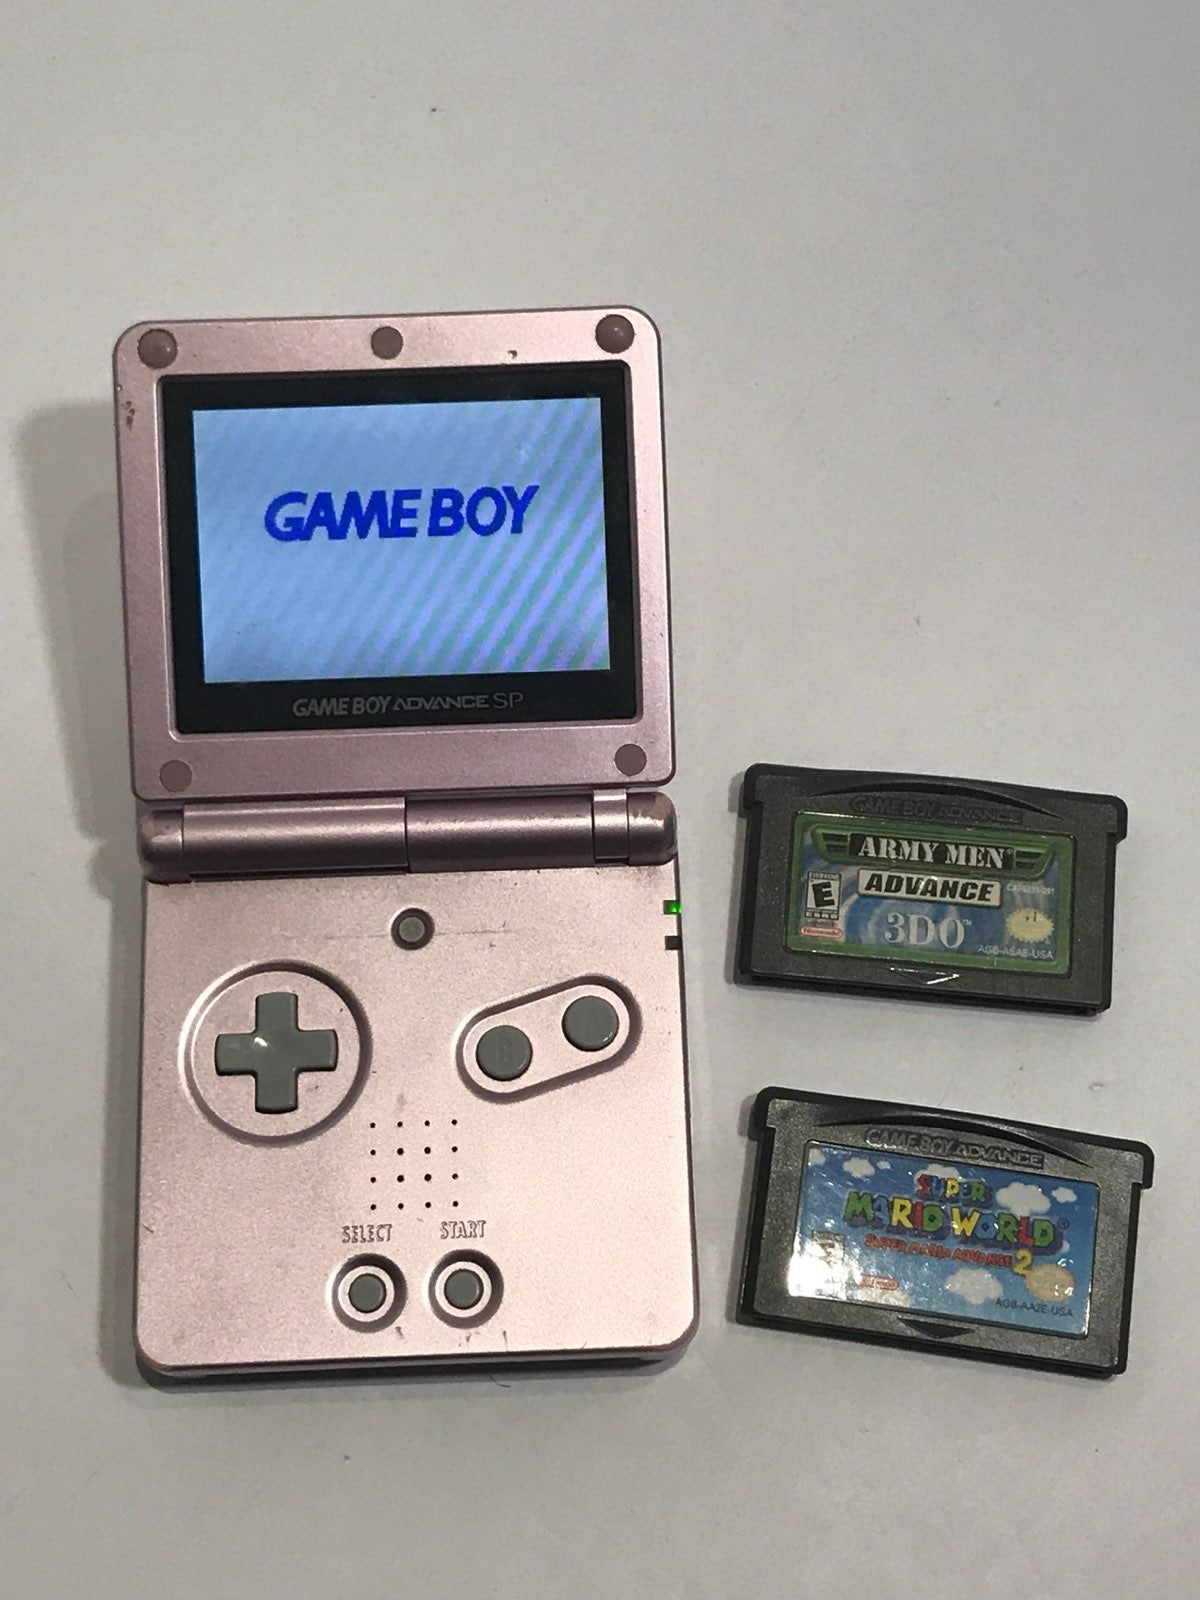 Pin By Adai Vidal On Est 2002 Gameboy Advance Sp Gameboy Advance Gameboy